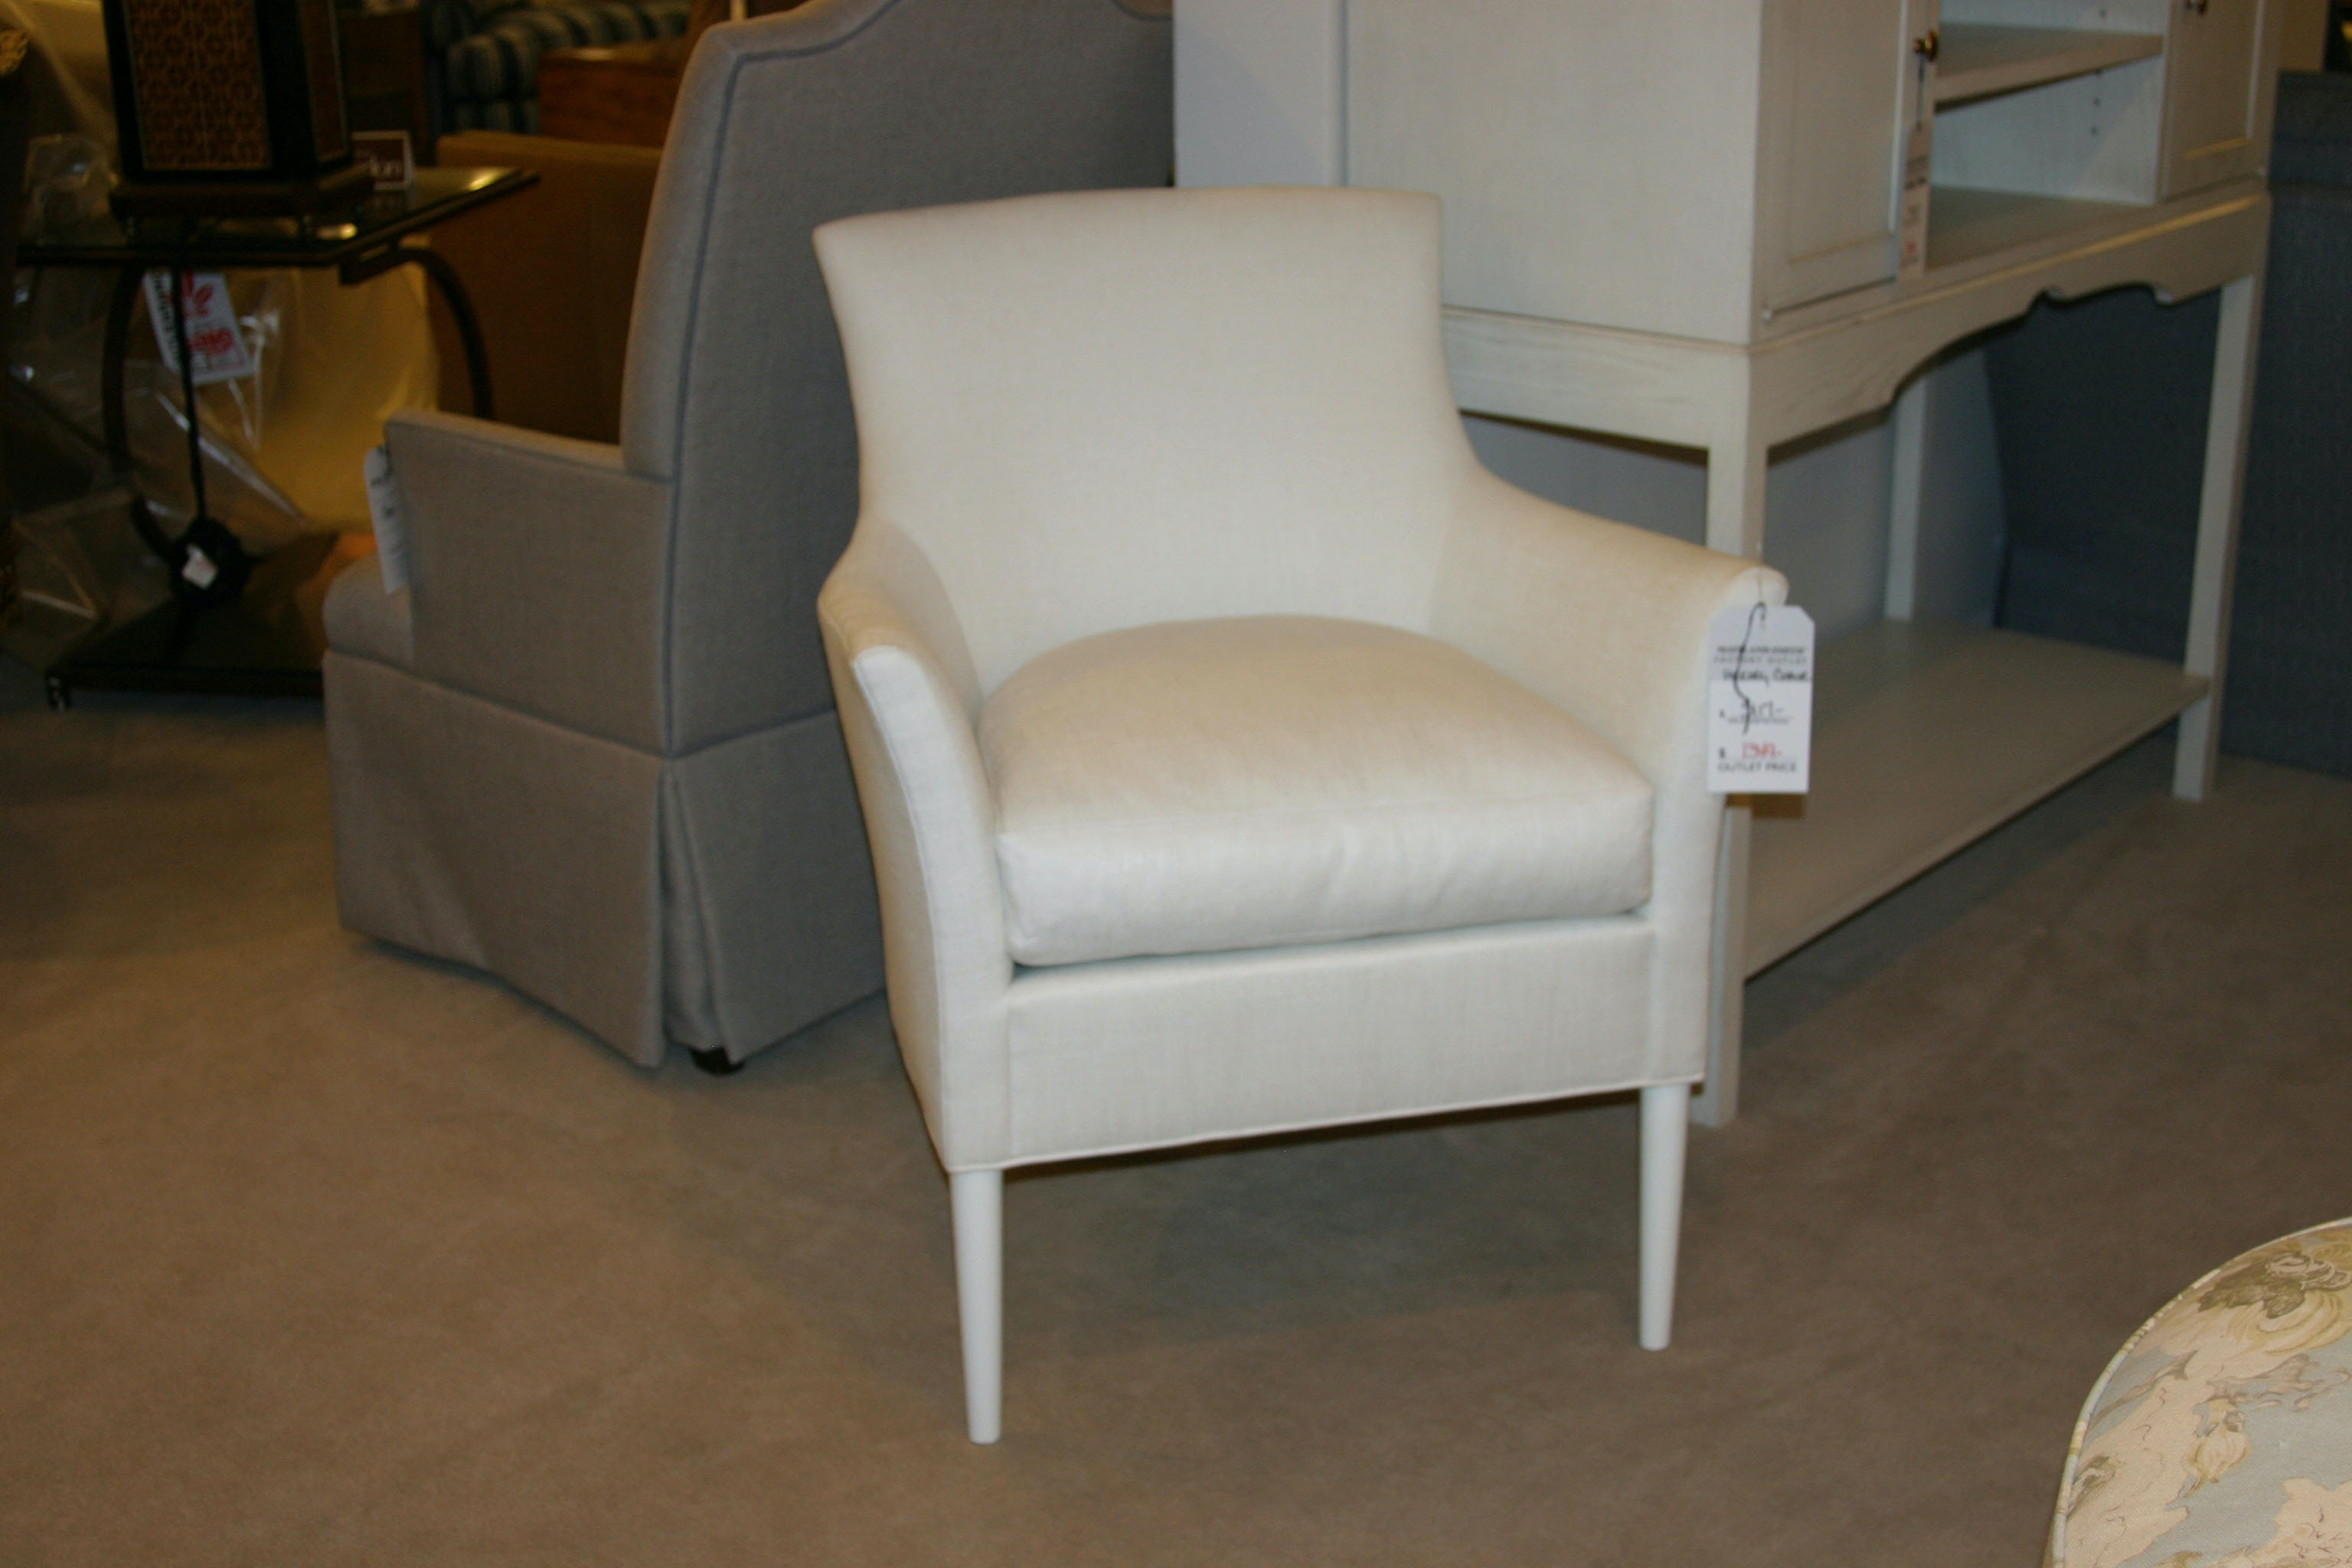 Hickory Chair Factory Outlet Living Room Suzanne Kasler Chastian Chair By  Hickory Chair (SKU: 1509 23) Is Available At Hickory Furniture Mart In  Hickory, ...